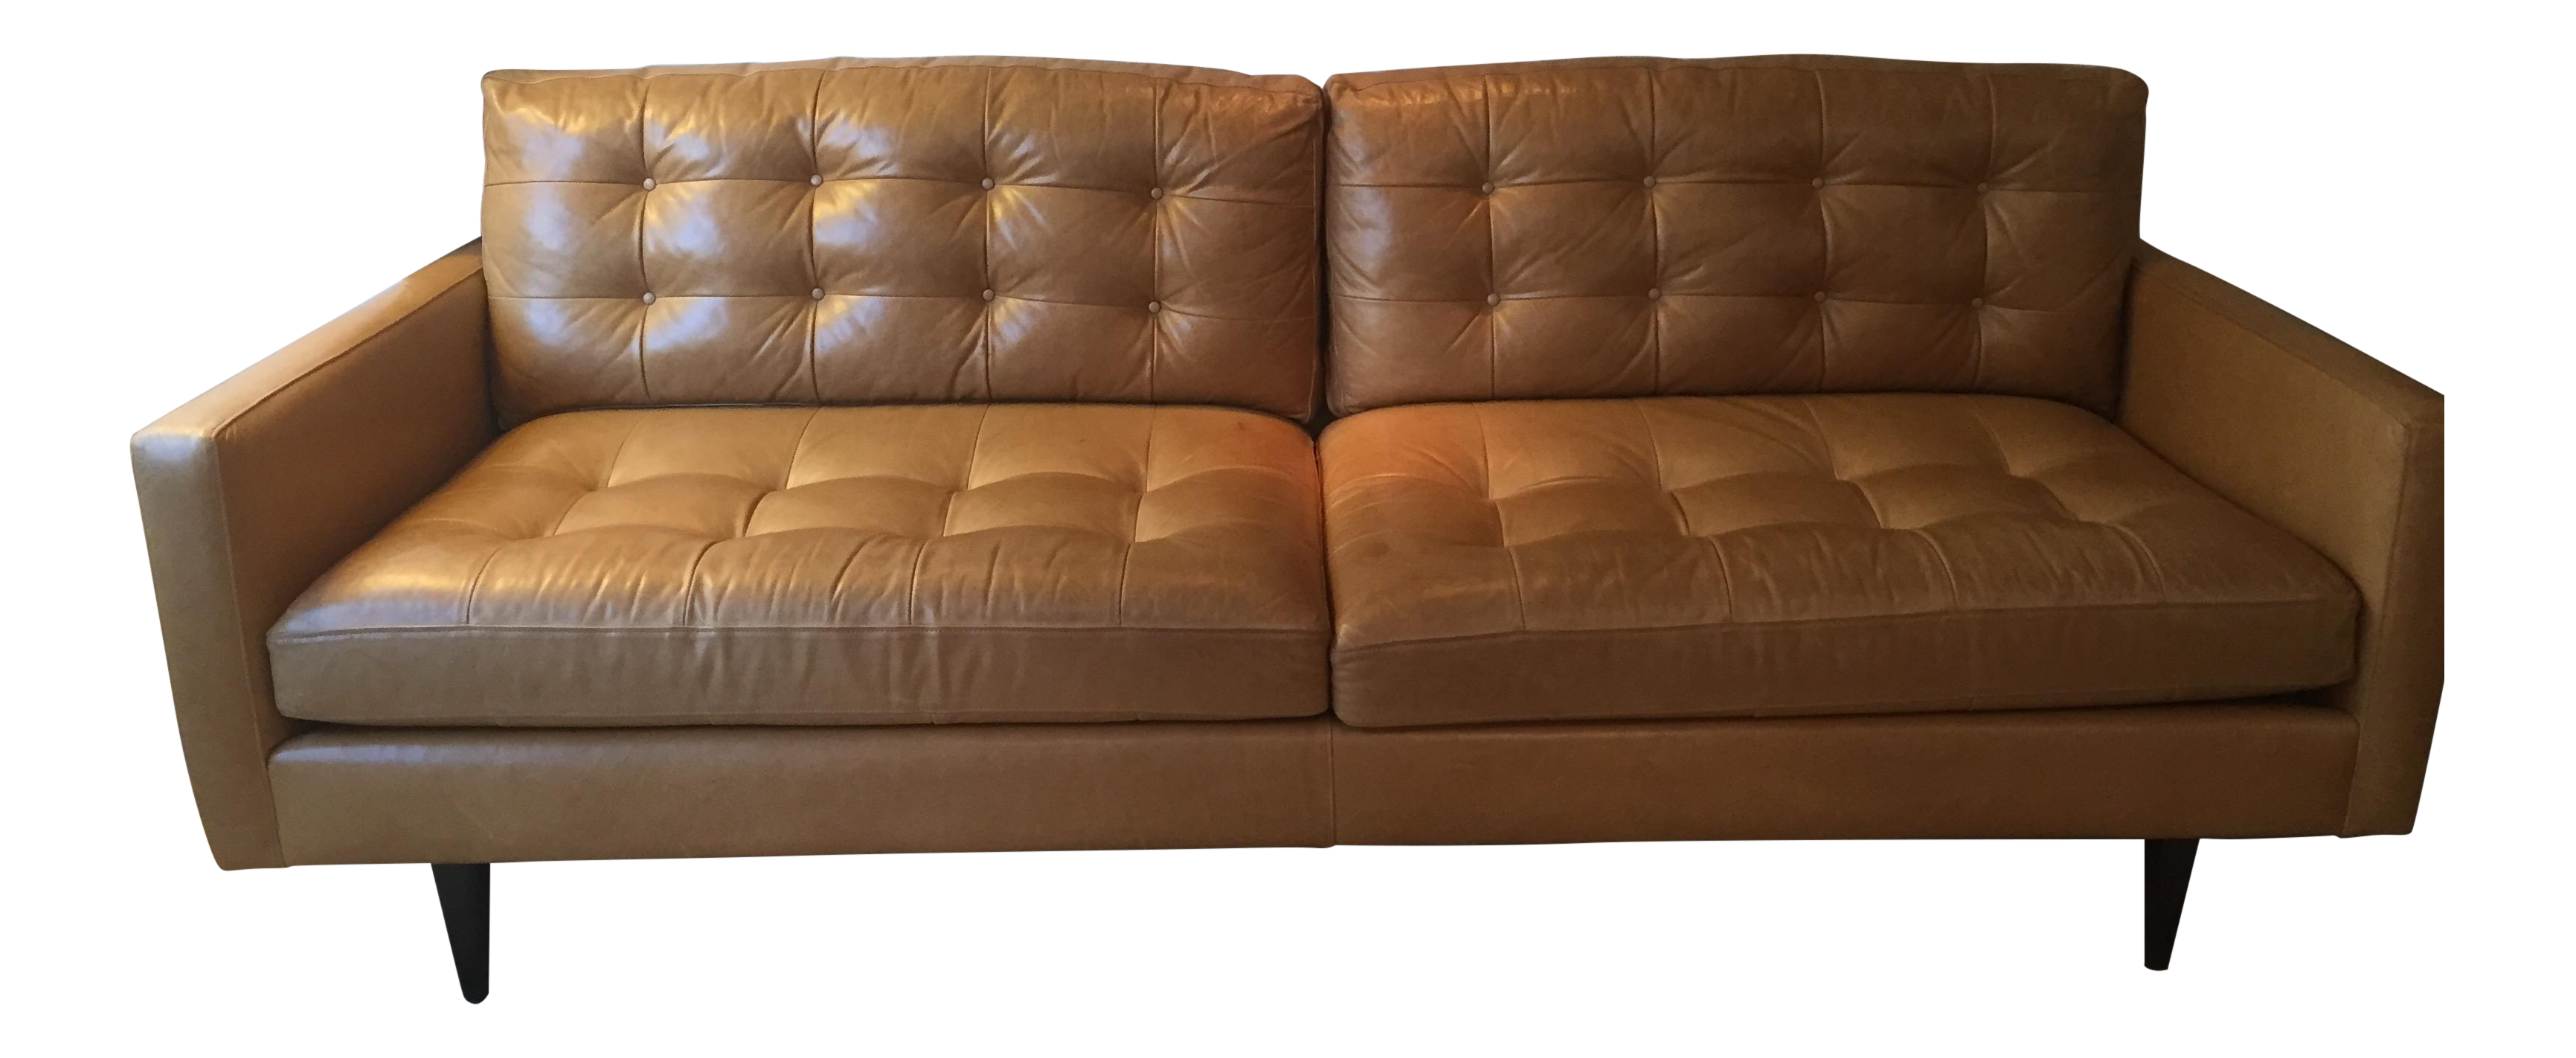 Crate & Barrel Petrie Leather Sofa